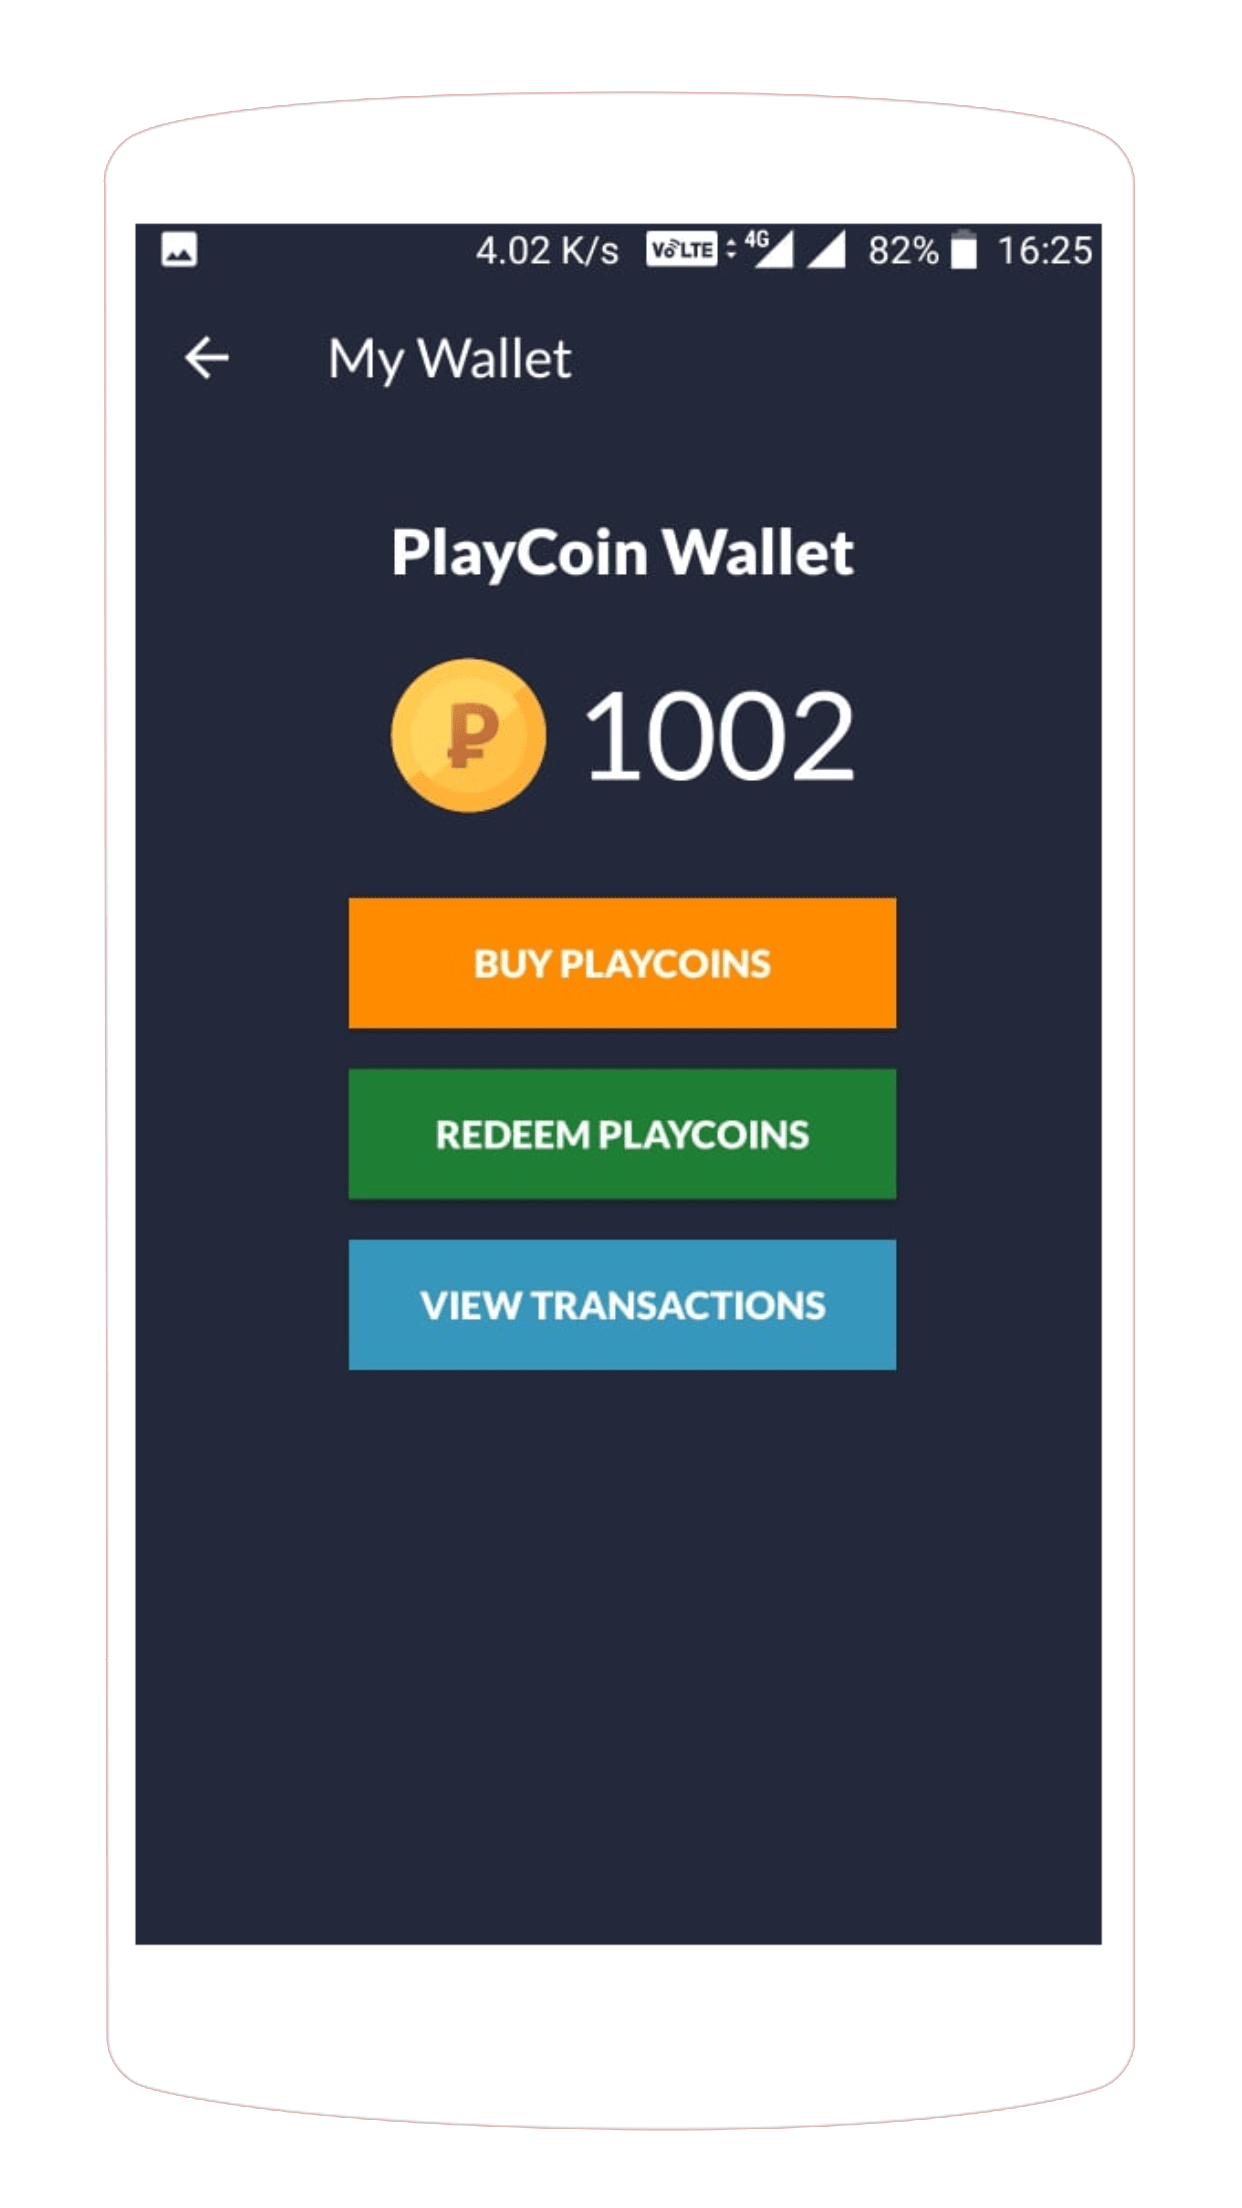 PlayerZon - Play PUBG Mobile & Win Cash Rewards